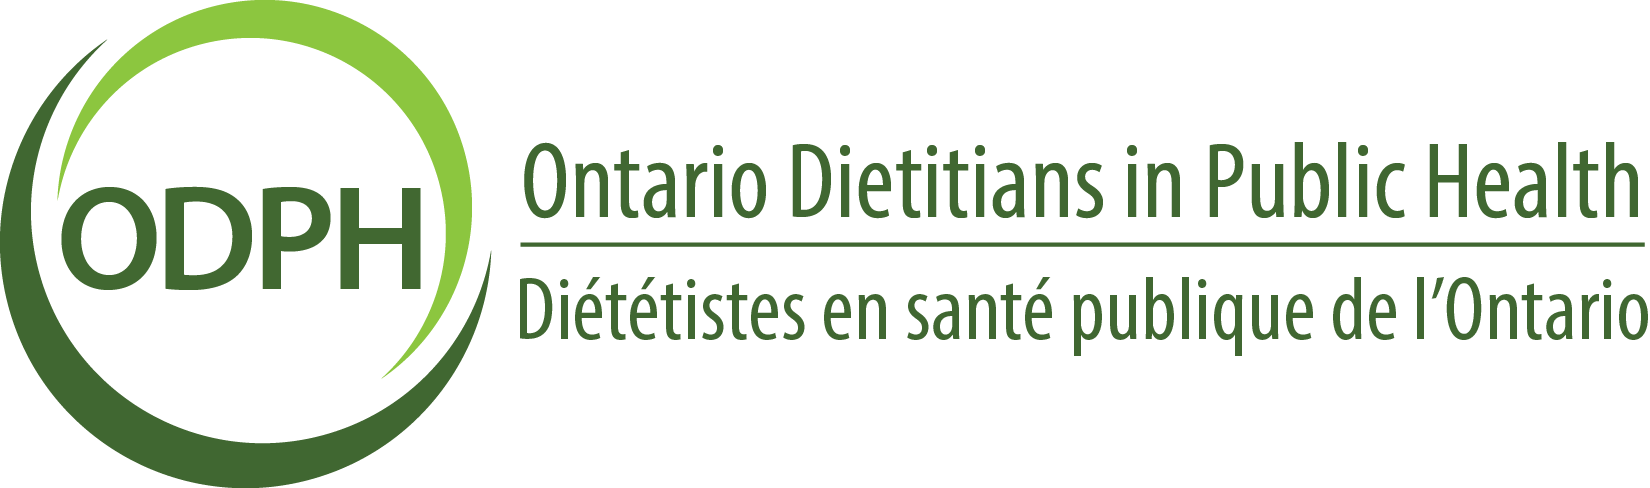 Ontario Dietitians in Public Health